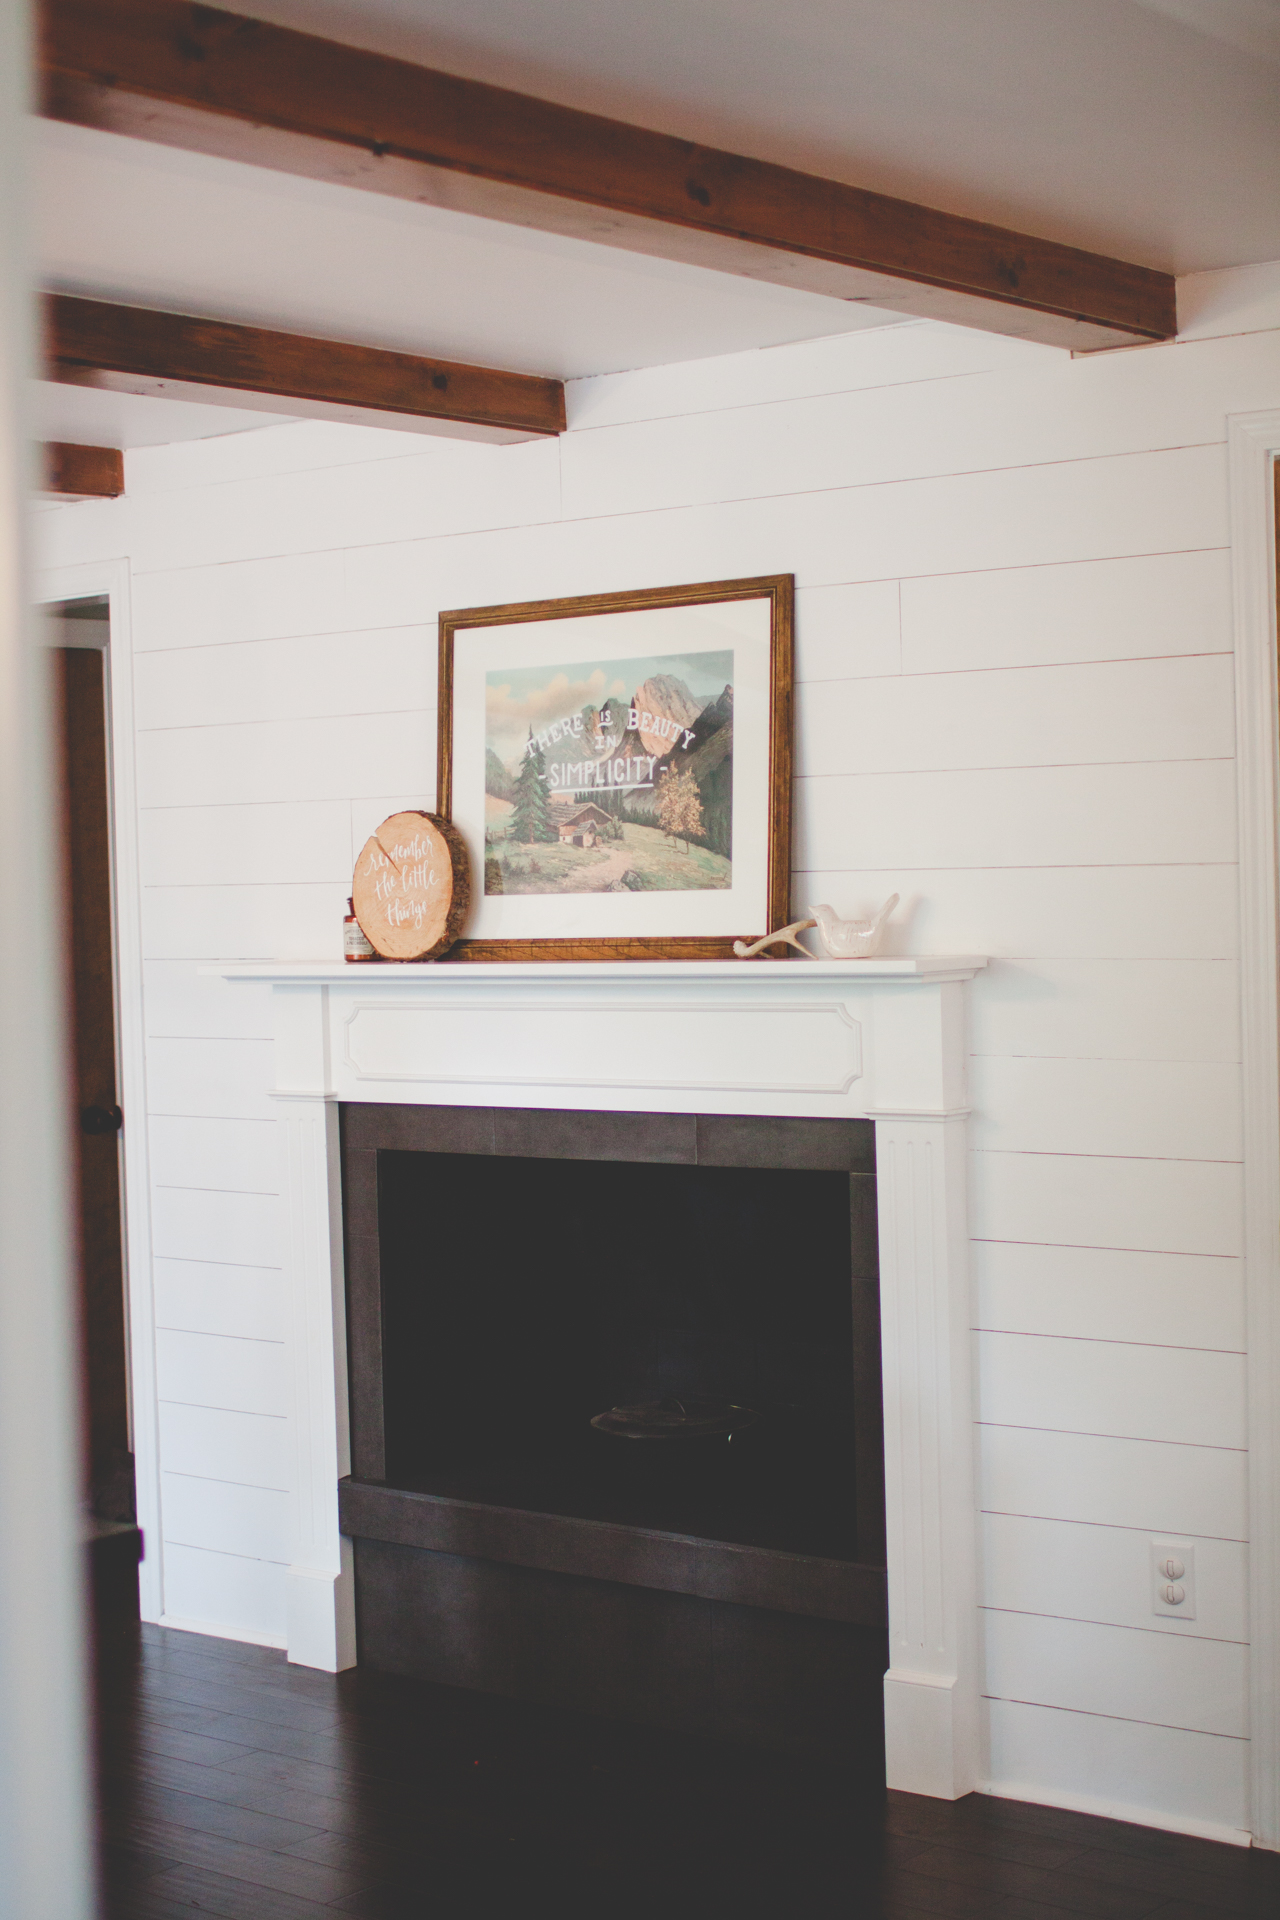 AFTER: New mantle, painted fireplace, new tile, shiplap, floors.